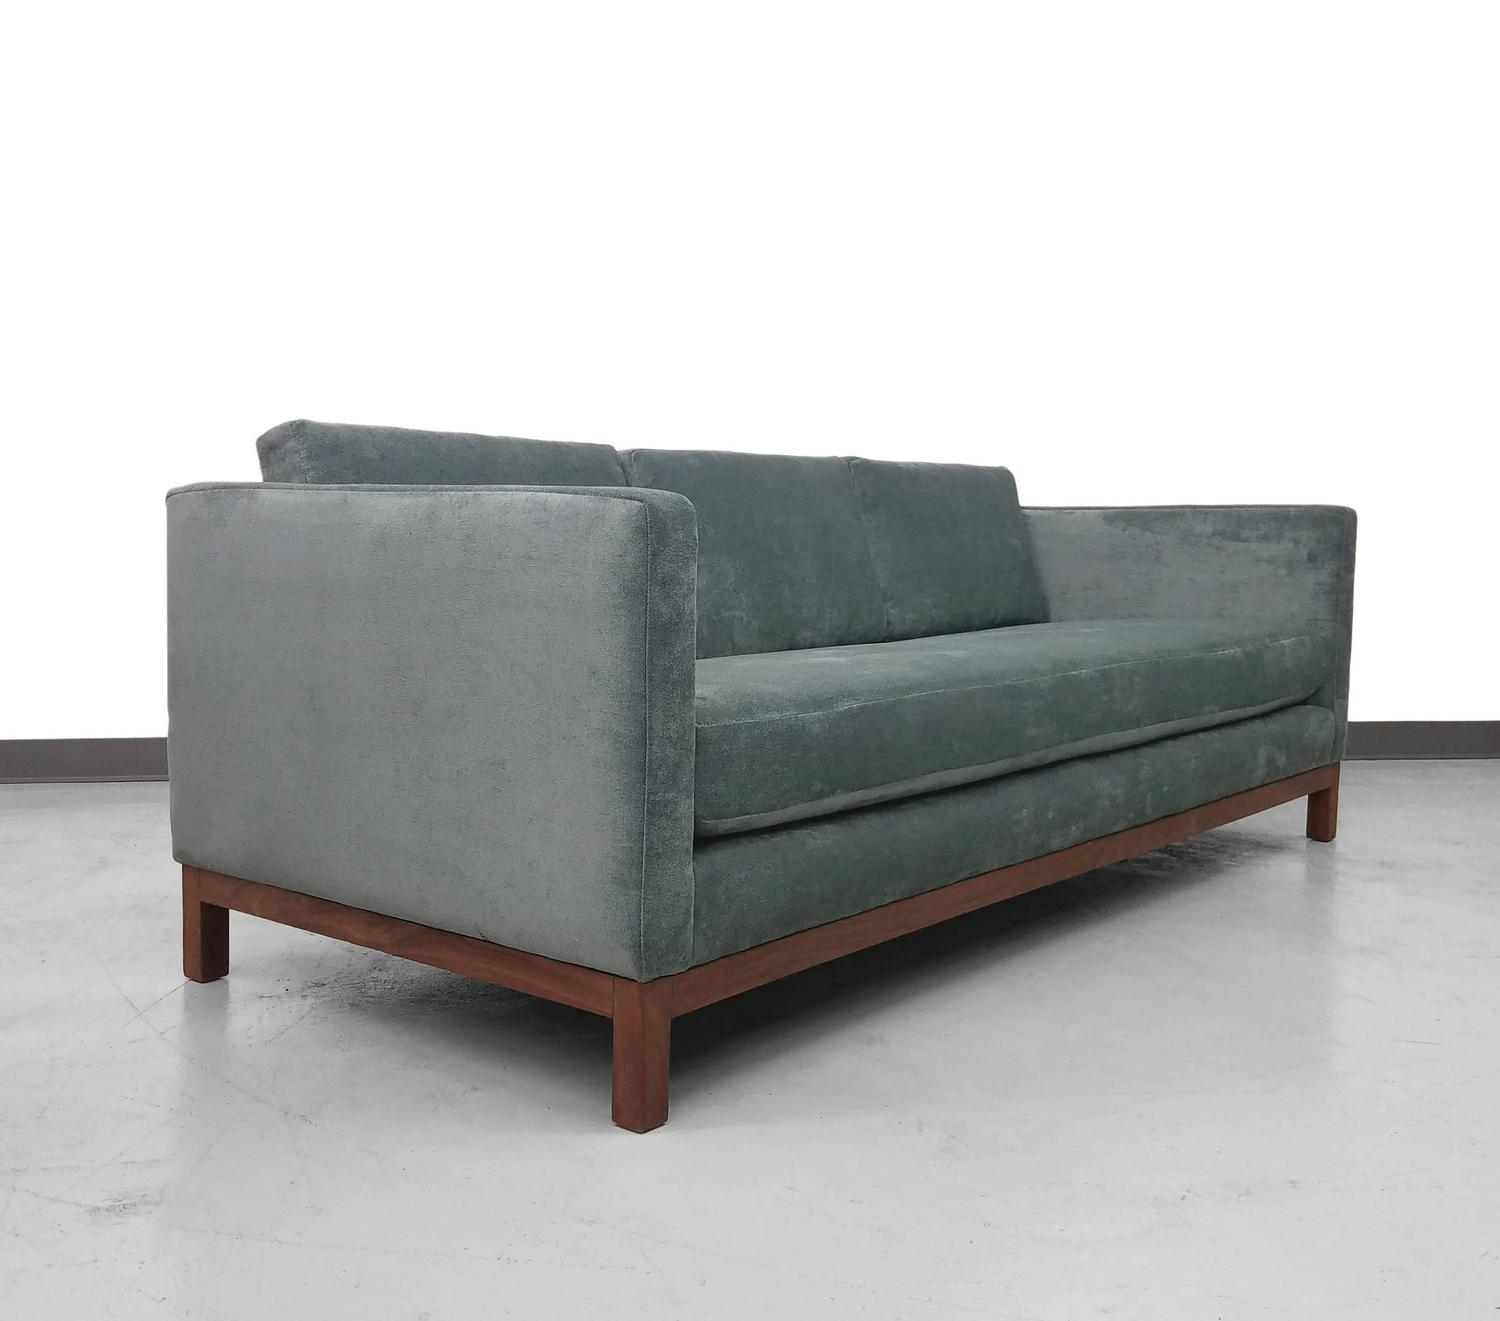 Sectional Couches Las Vegas Nv: Mid-Century Tuxedo Sofa By Milo Baughman At 1stdibs